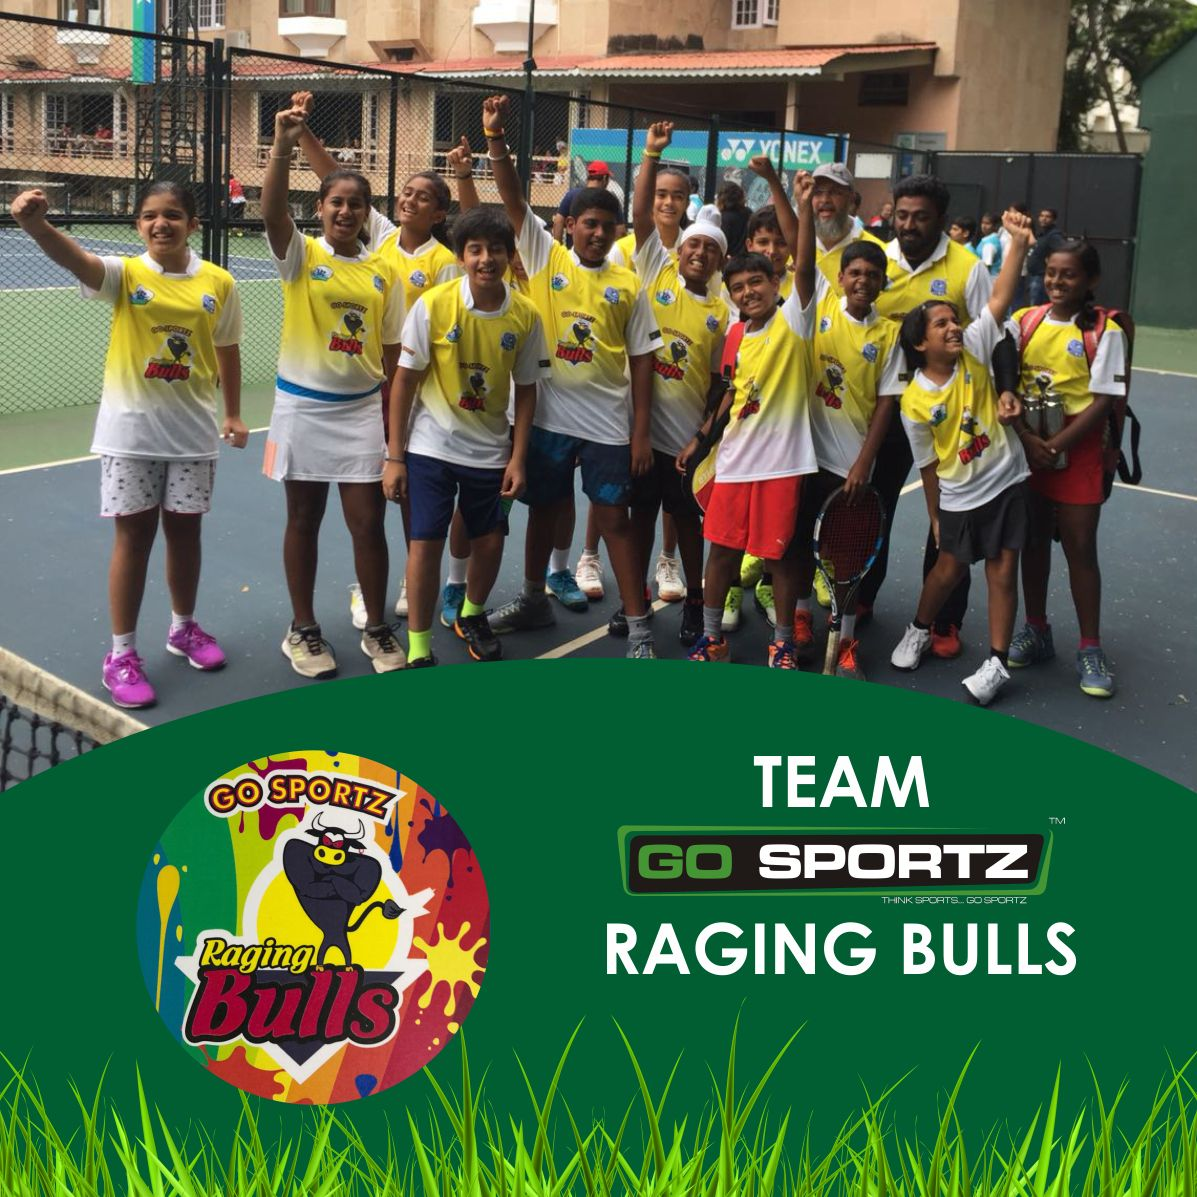 This Is The 3rd Season Go Sportz Is The Franchise Owner Of The Team Raging Bulls The League Has Been A Lot Fun Sports Sports Activities Outdoor Sports